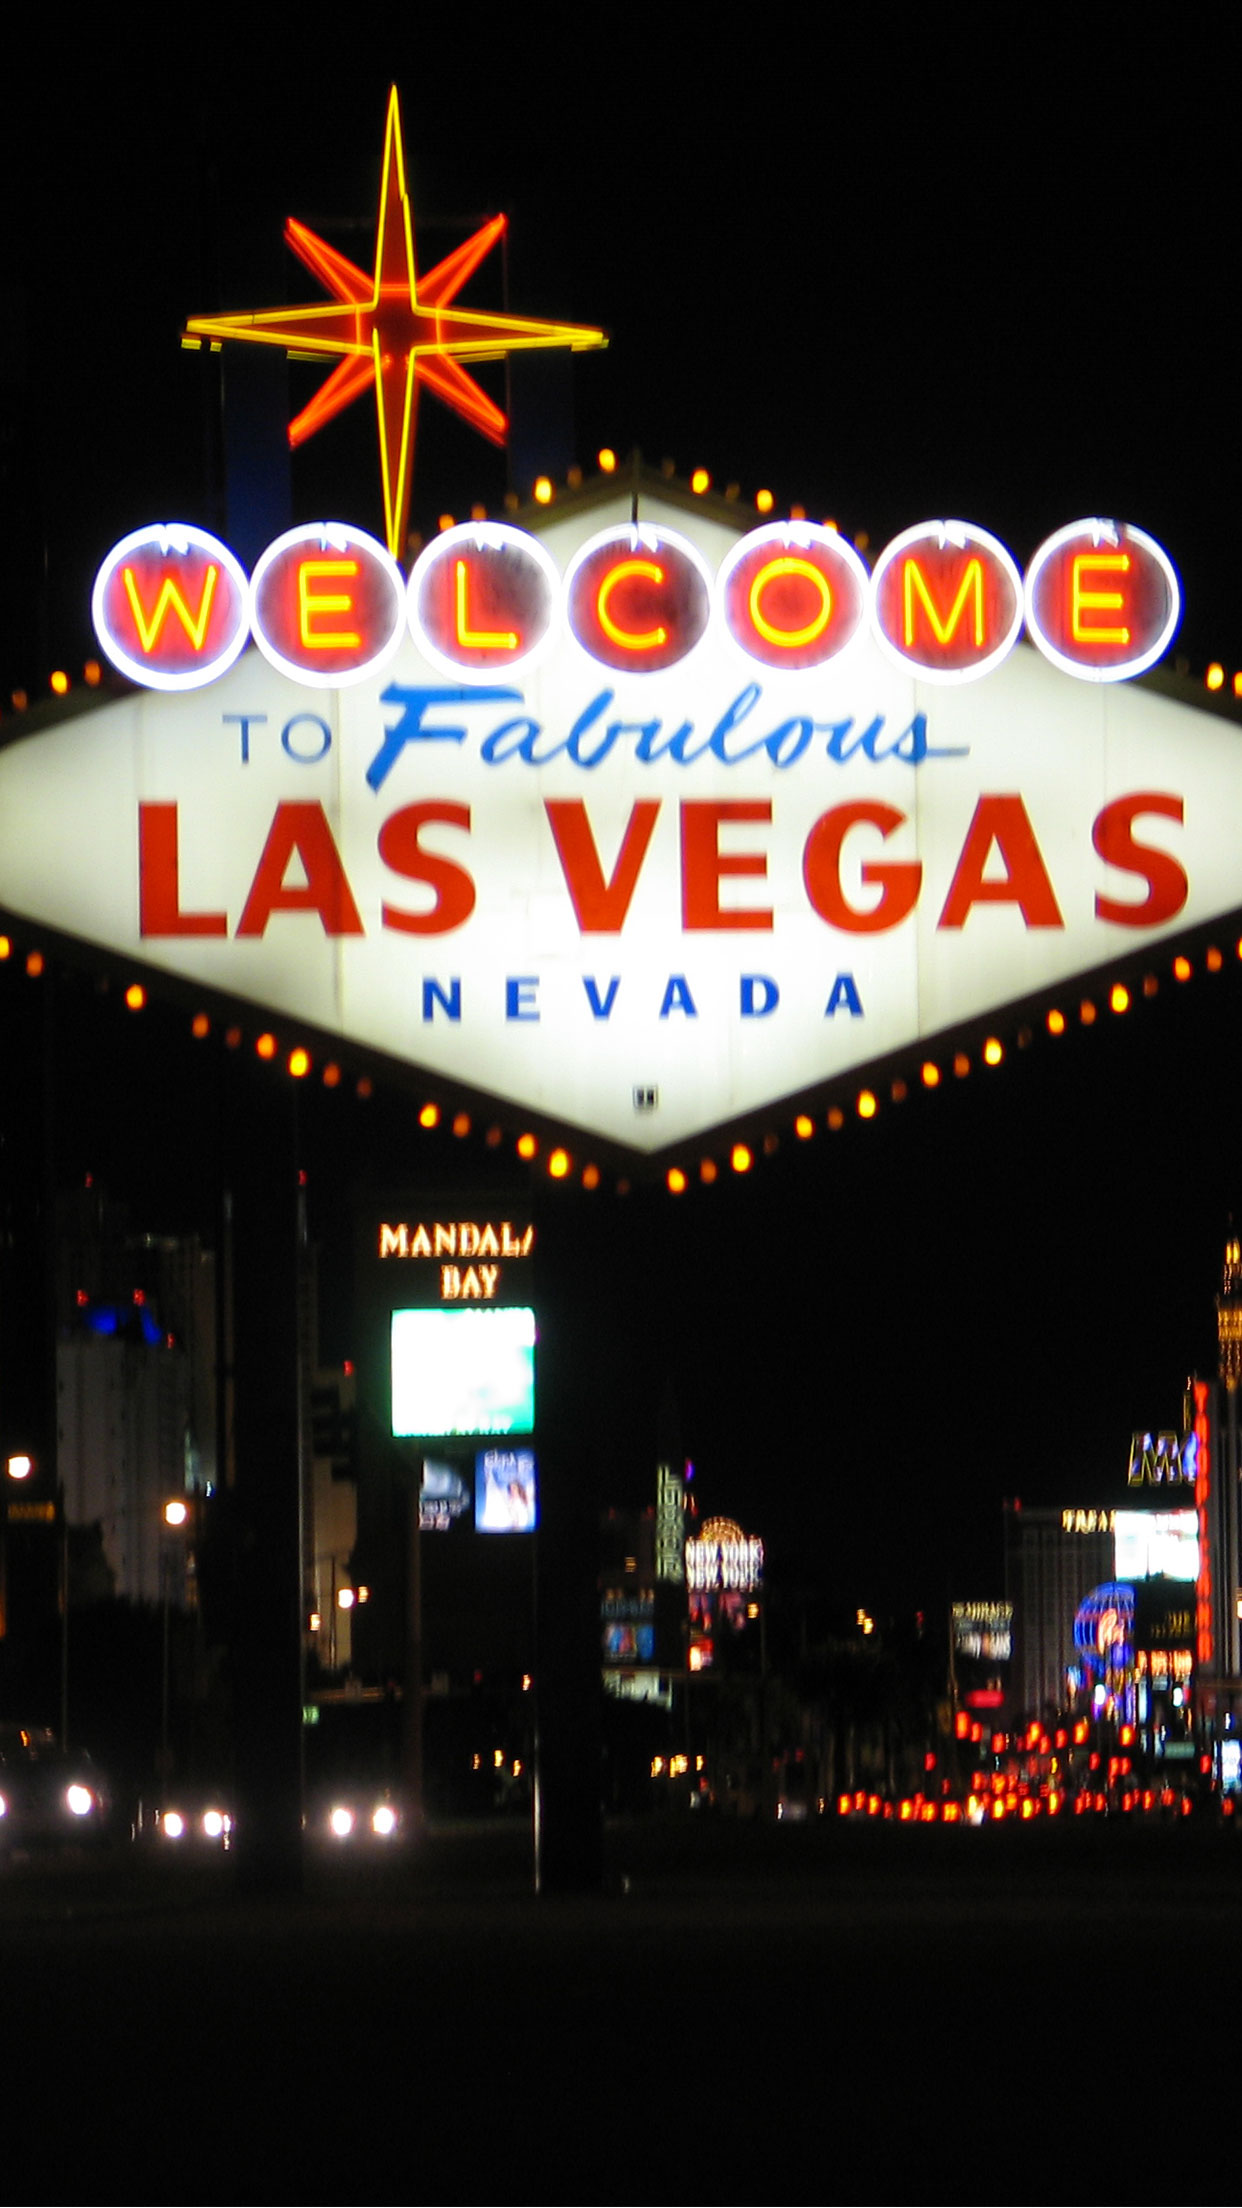 Cars Iphone 7 Wallpaper Las Vegas Welcome Wallpaper For Iphone X 8 7 6 Free